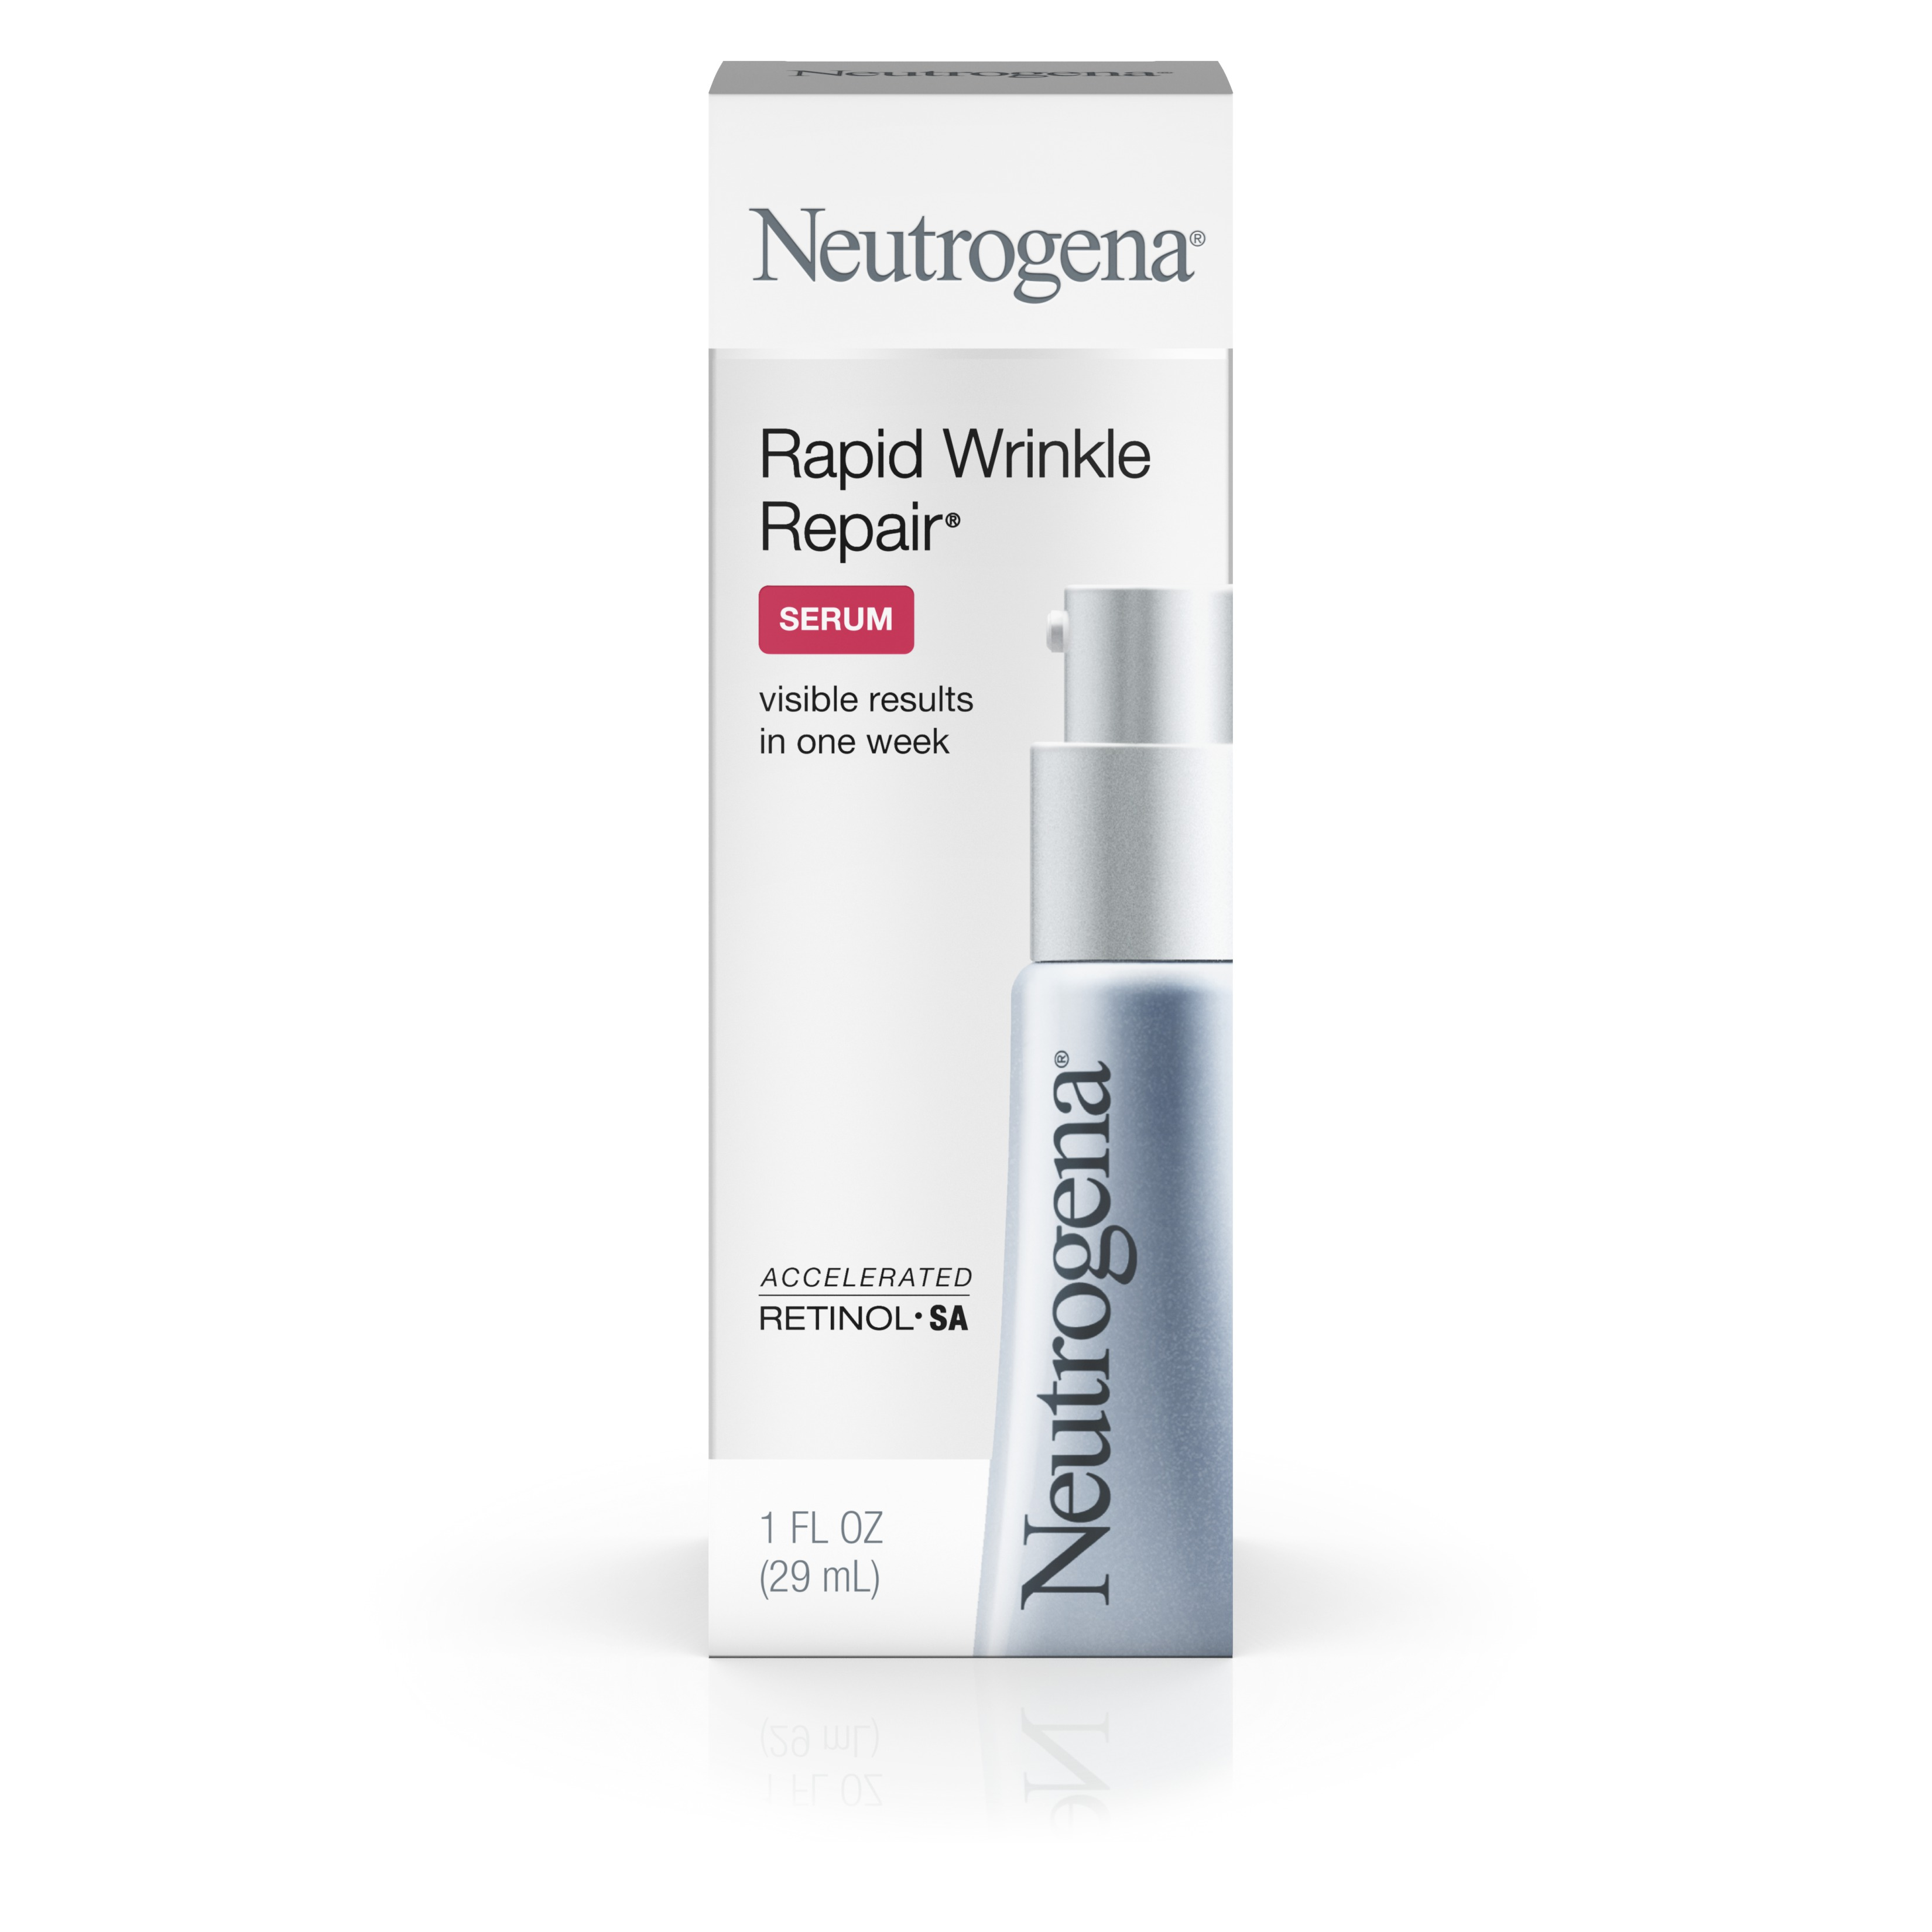 Neutrogena Rapid Wrinkle Repair Serum With Retinol, 1 Fl. Oz. - Walmart.com